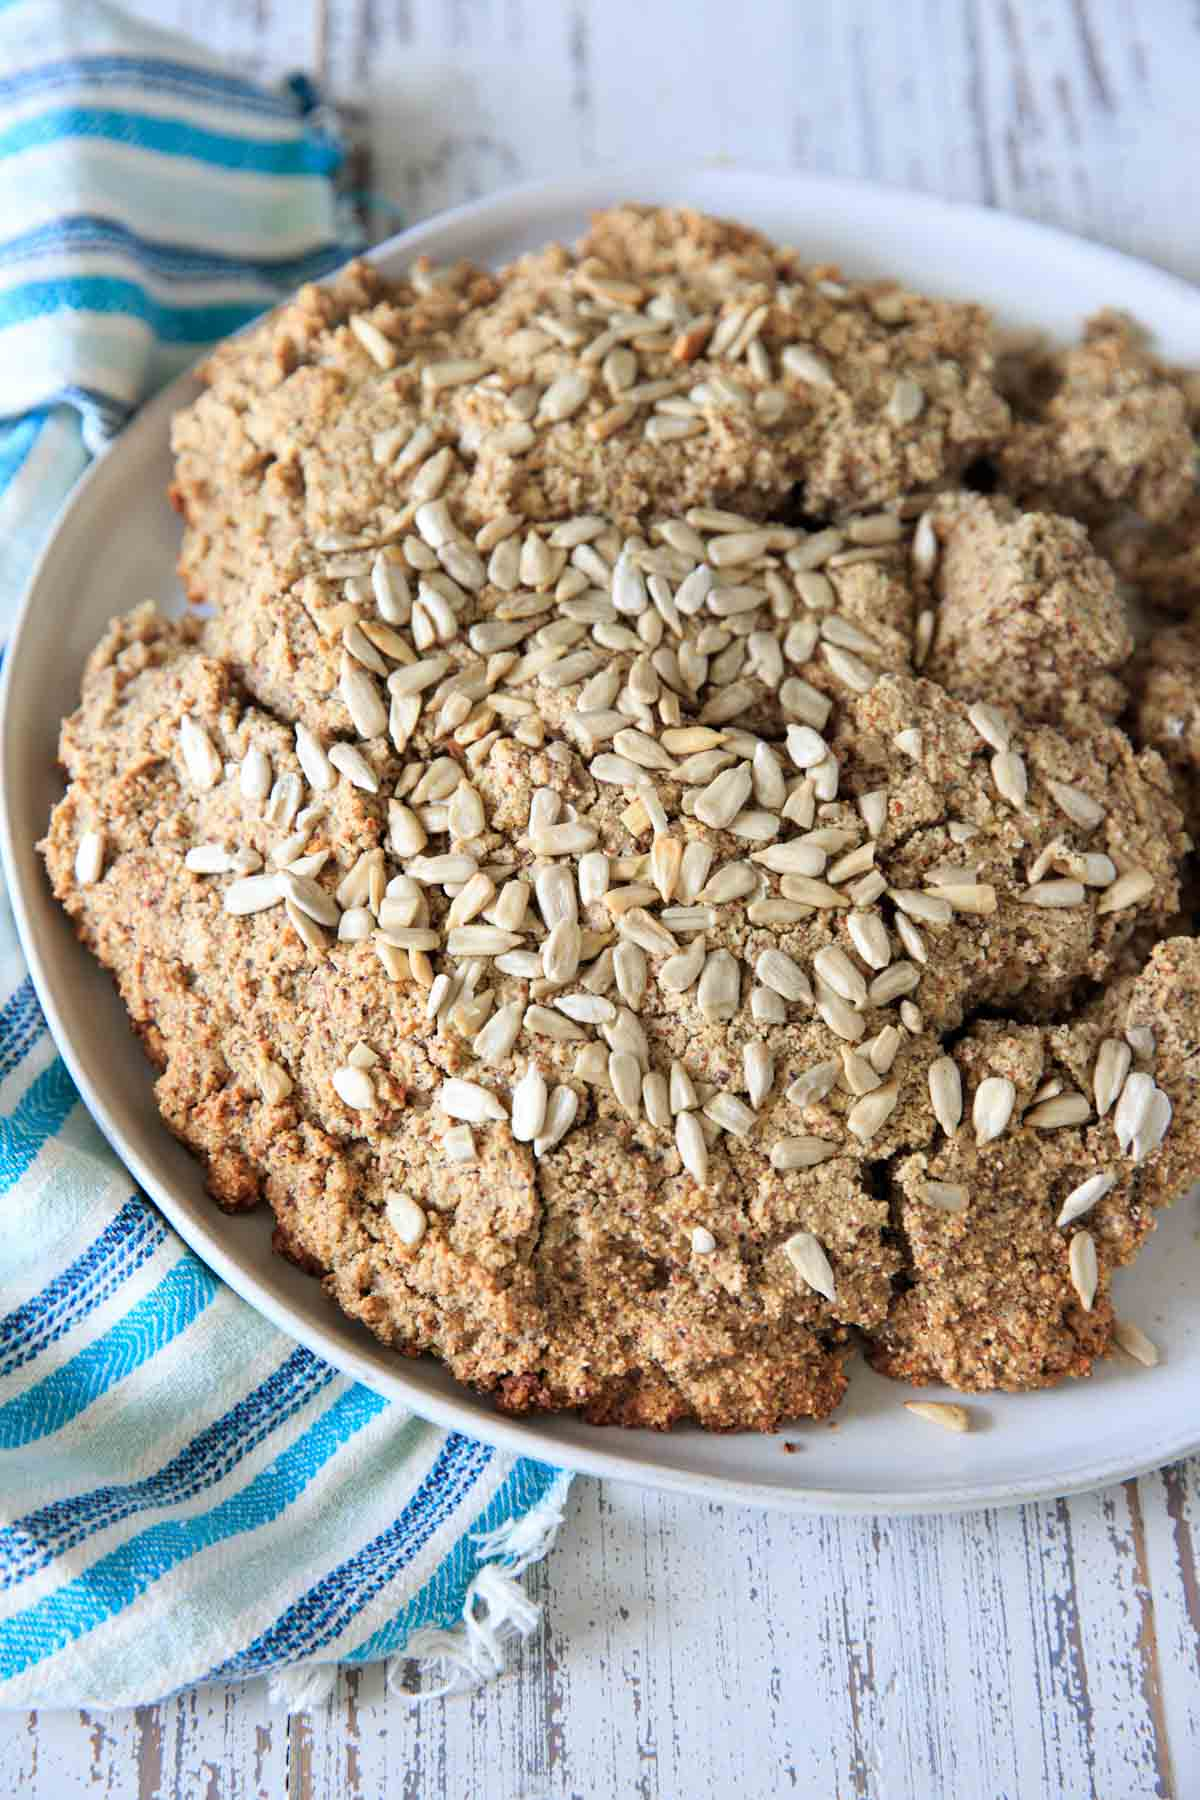 Gluten-free quinoa bread with a touch of honey for sweetness. A good soup and stew bread or hearty quick bread!